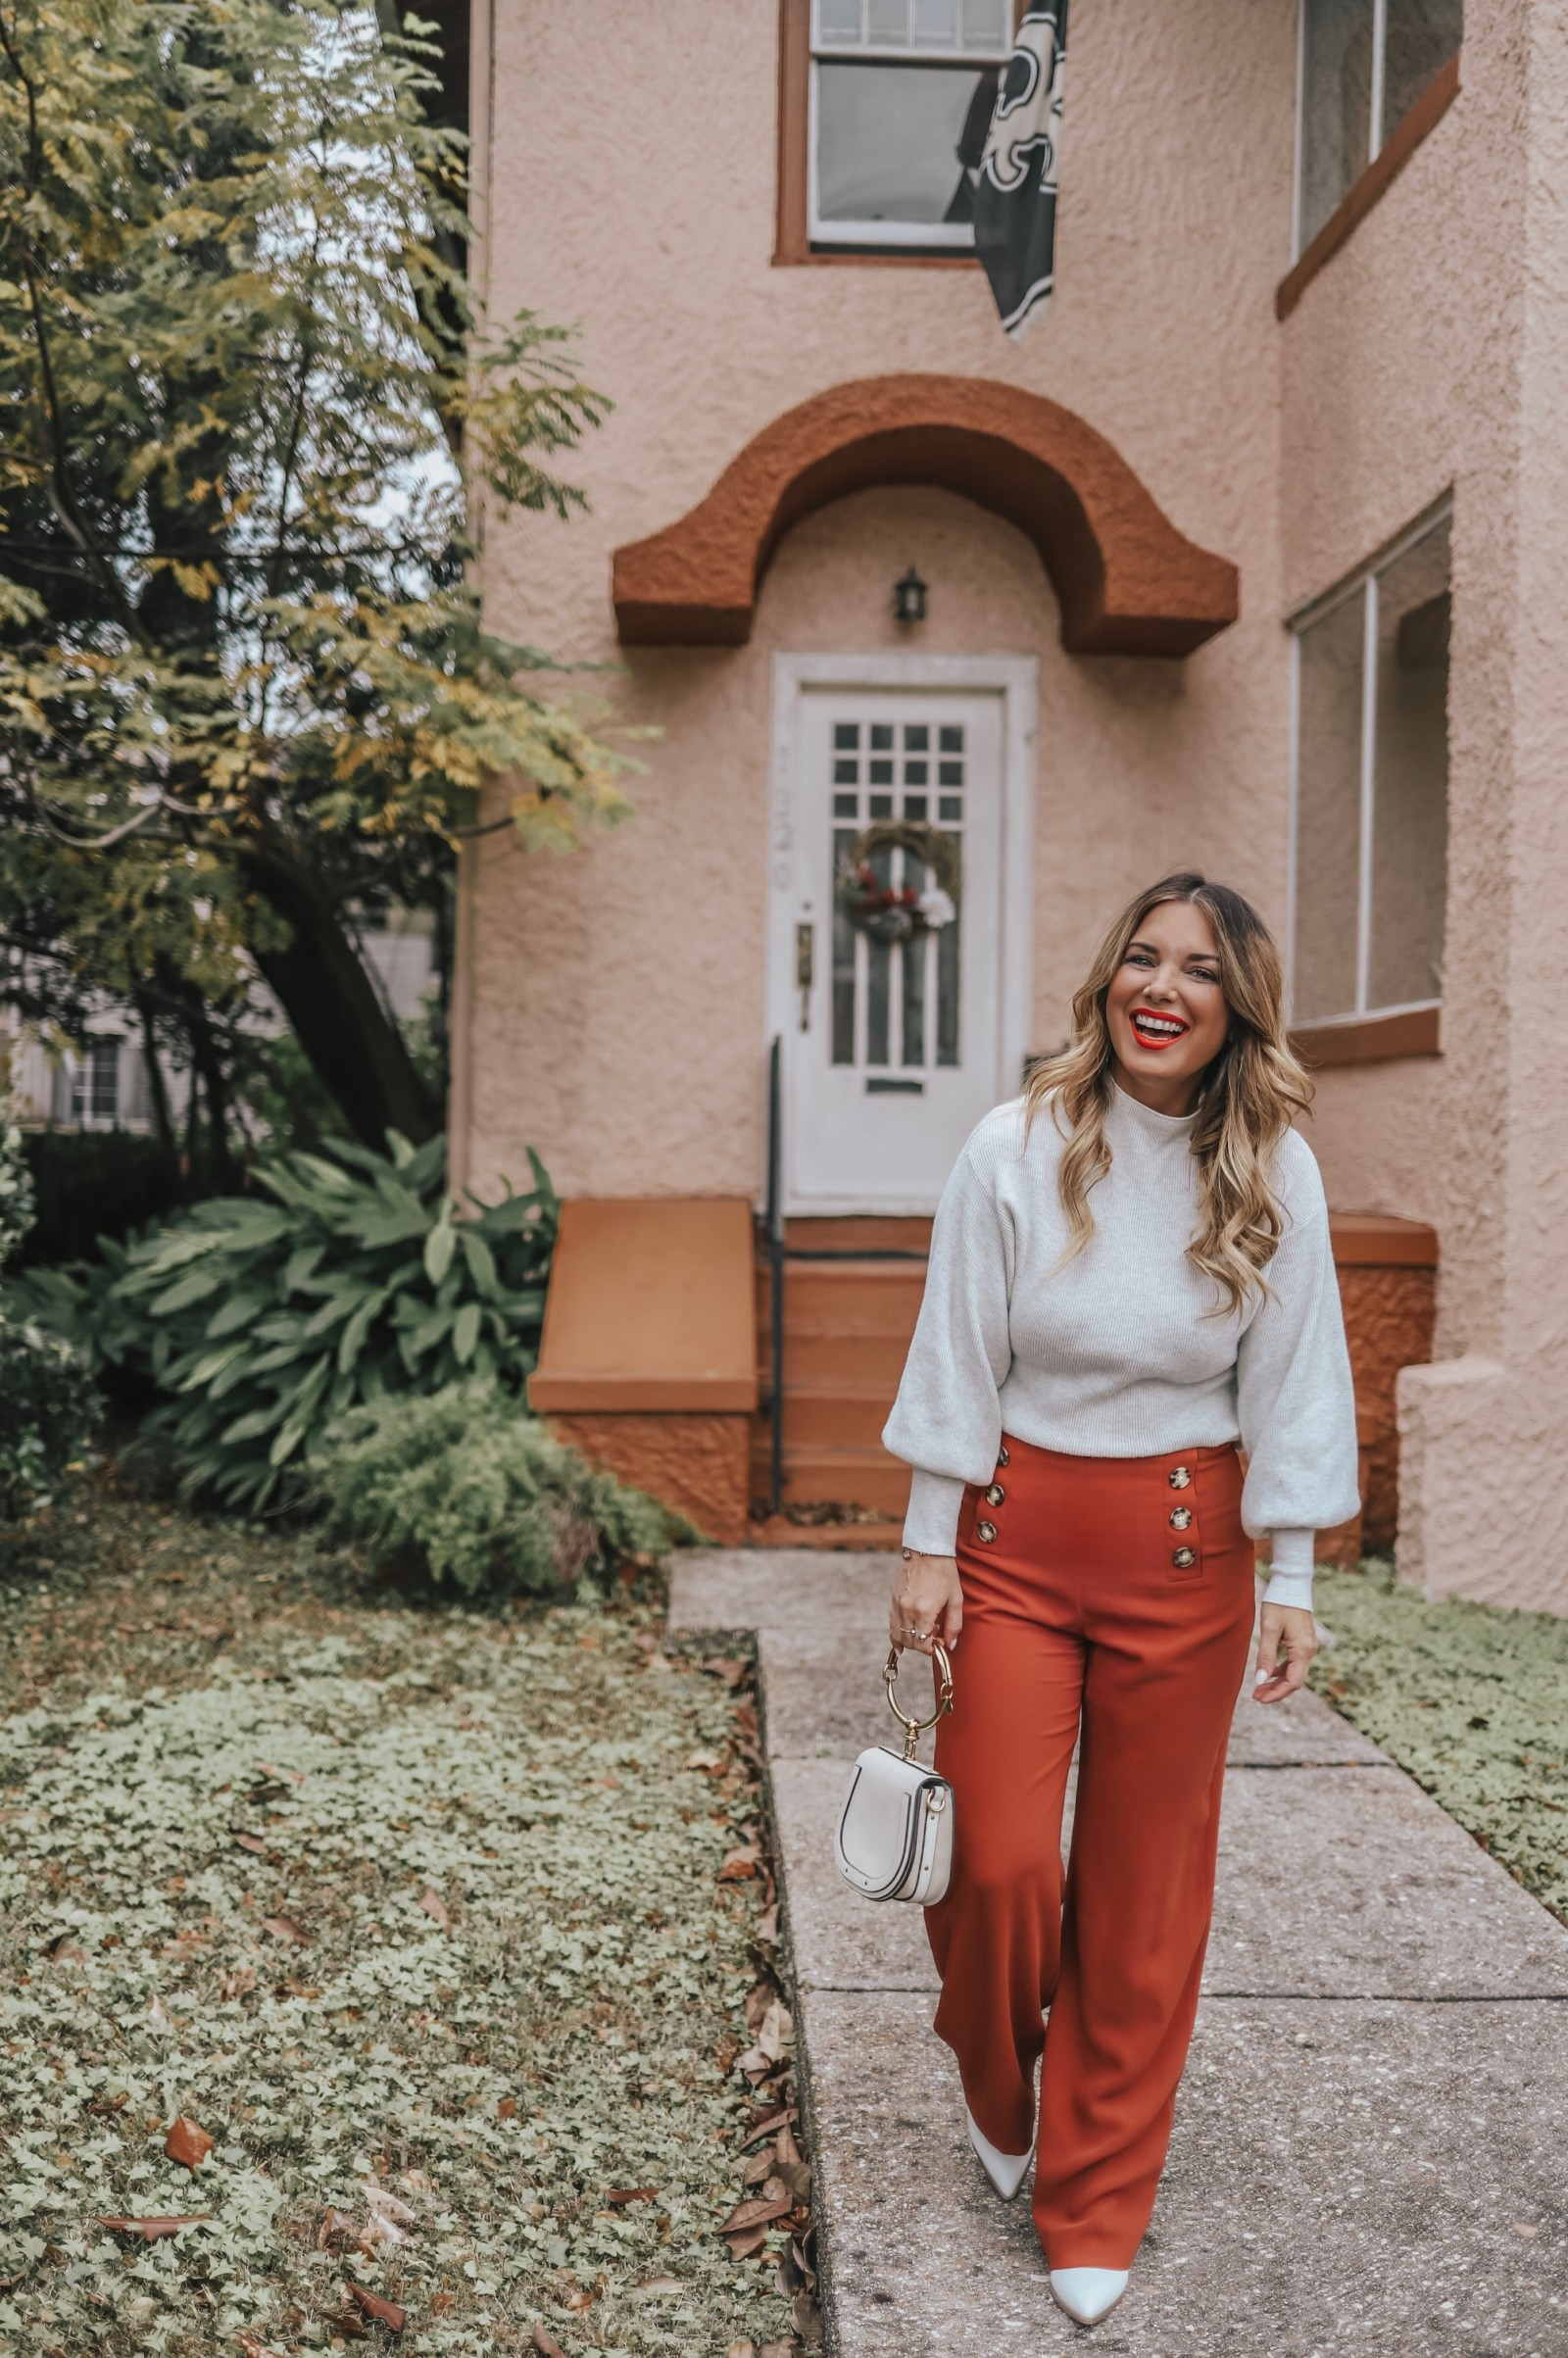 HOW TO FIND PETITE CLOTHES THAT ACTUALLY FIT. AND, WIDE LEG PANTS AND A BASIC TOP FROM RIVER ISLAND WORN TWO WAYS.